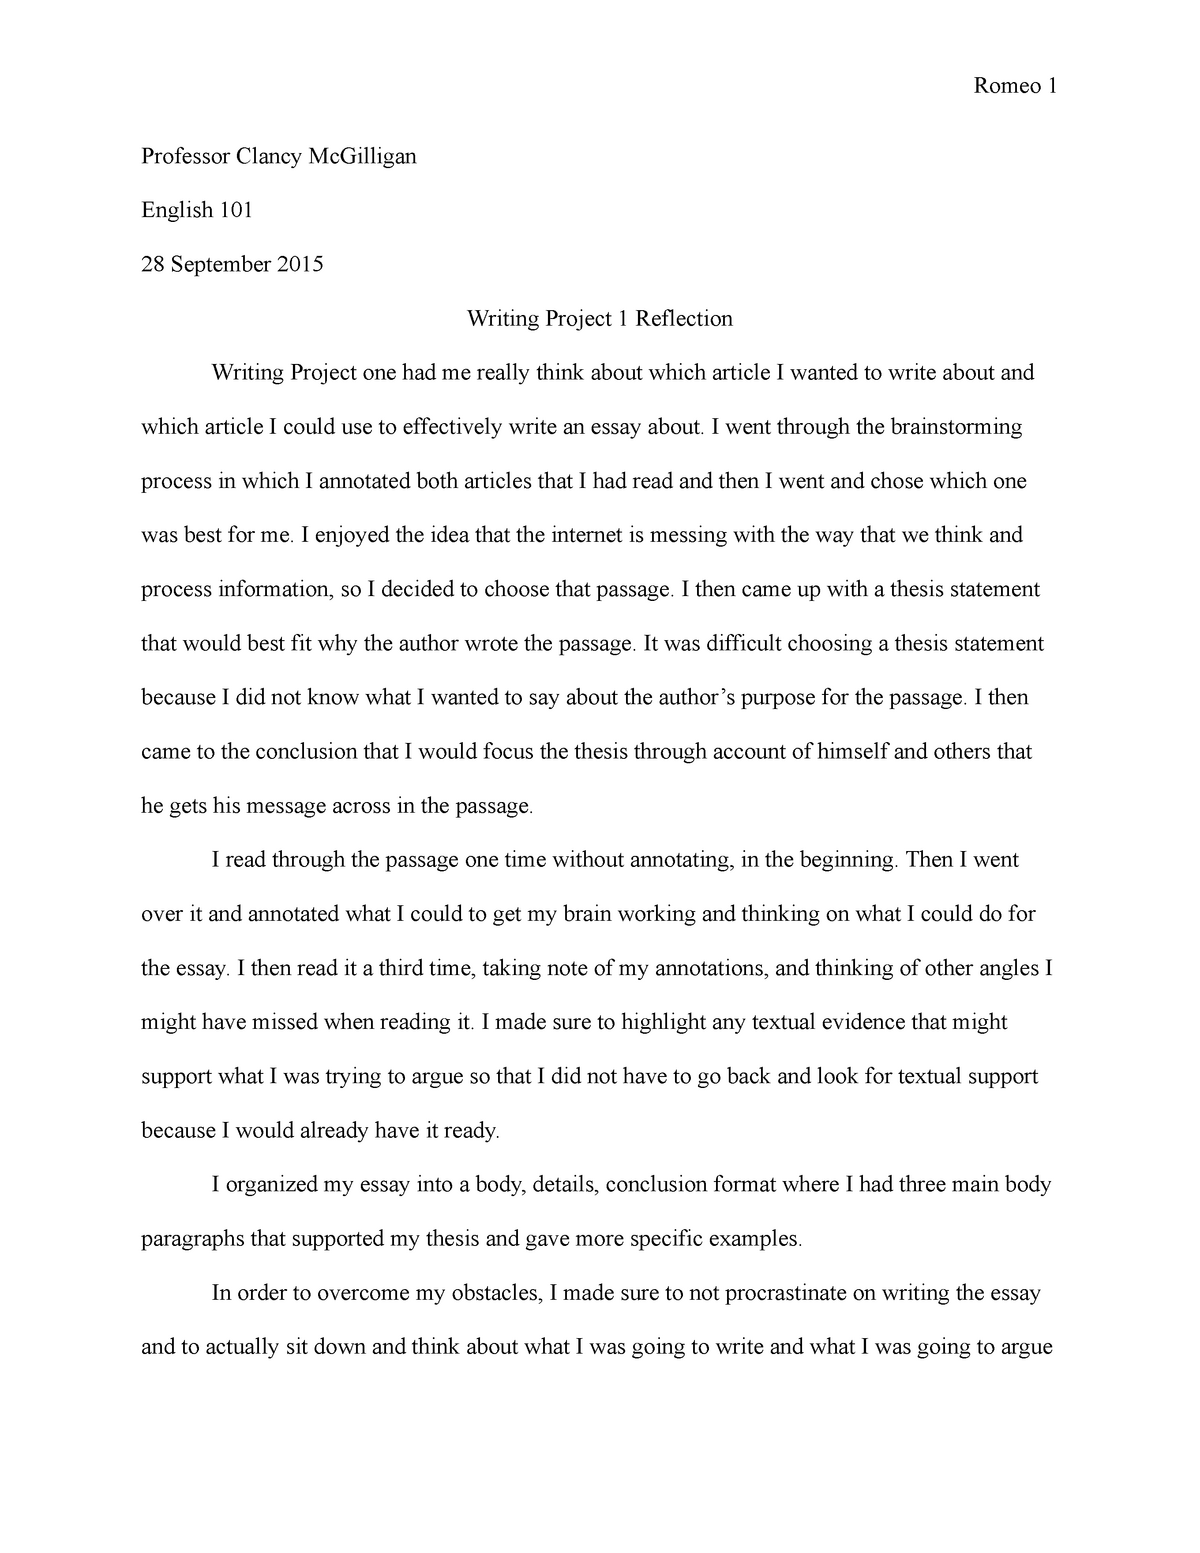 essay reflection of first writing project   grade a   studocu